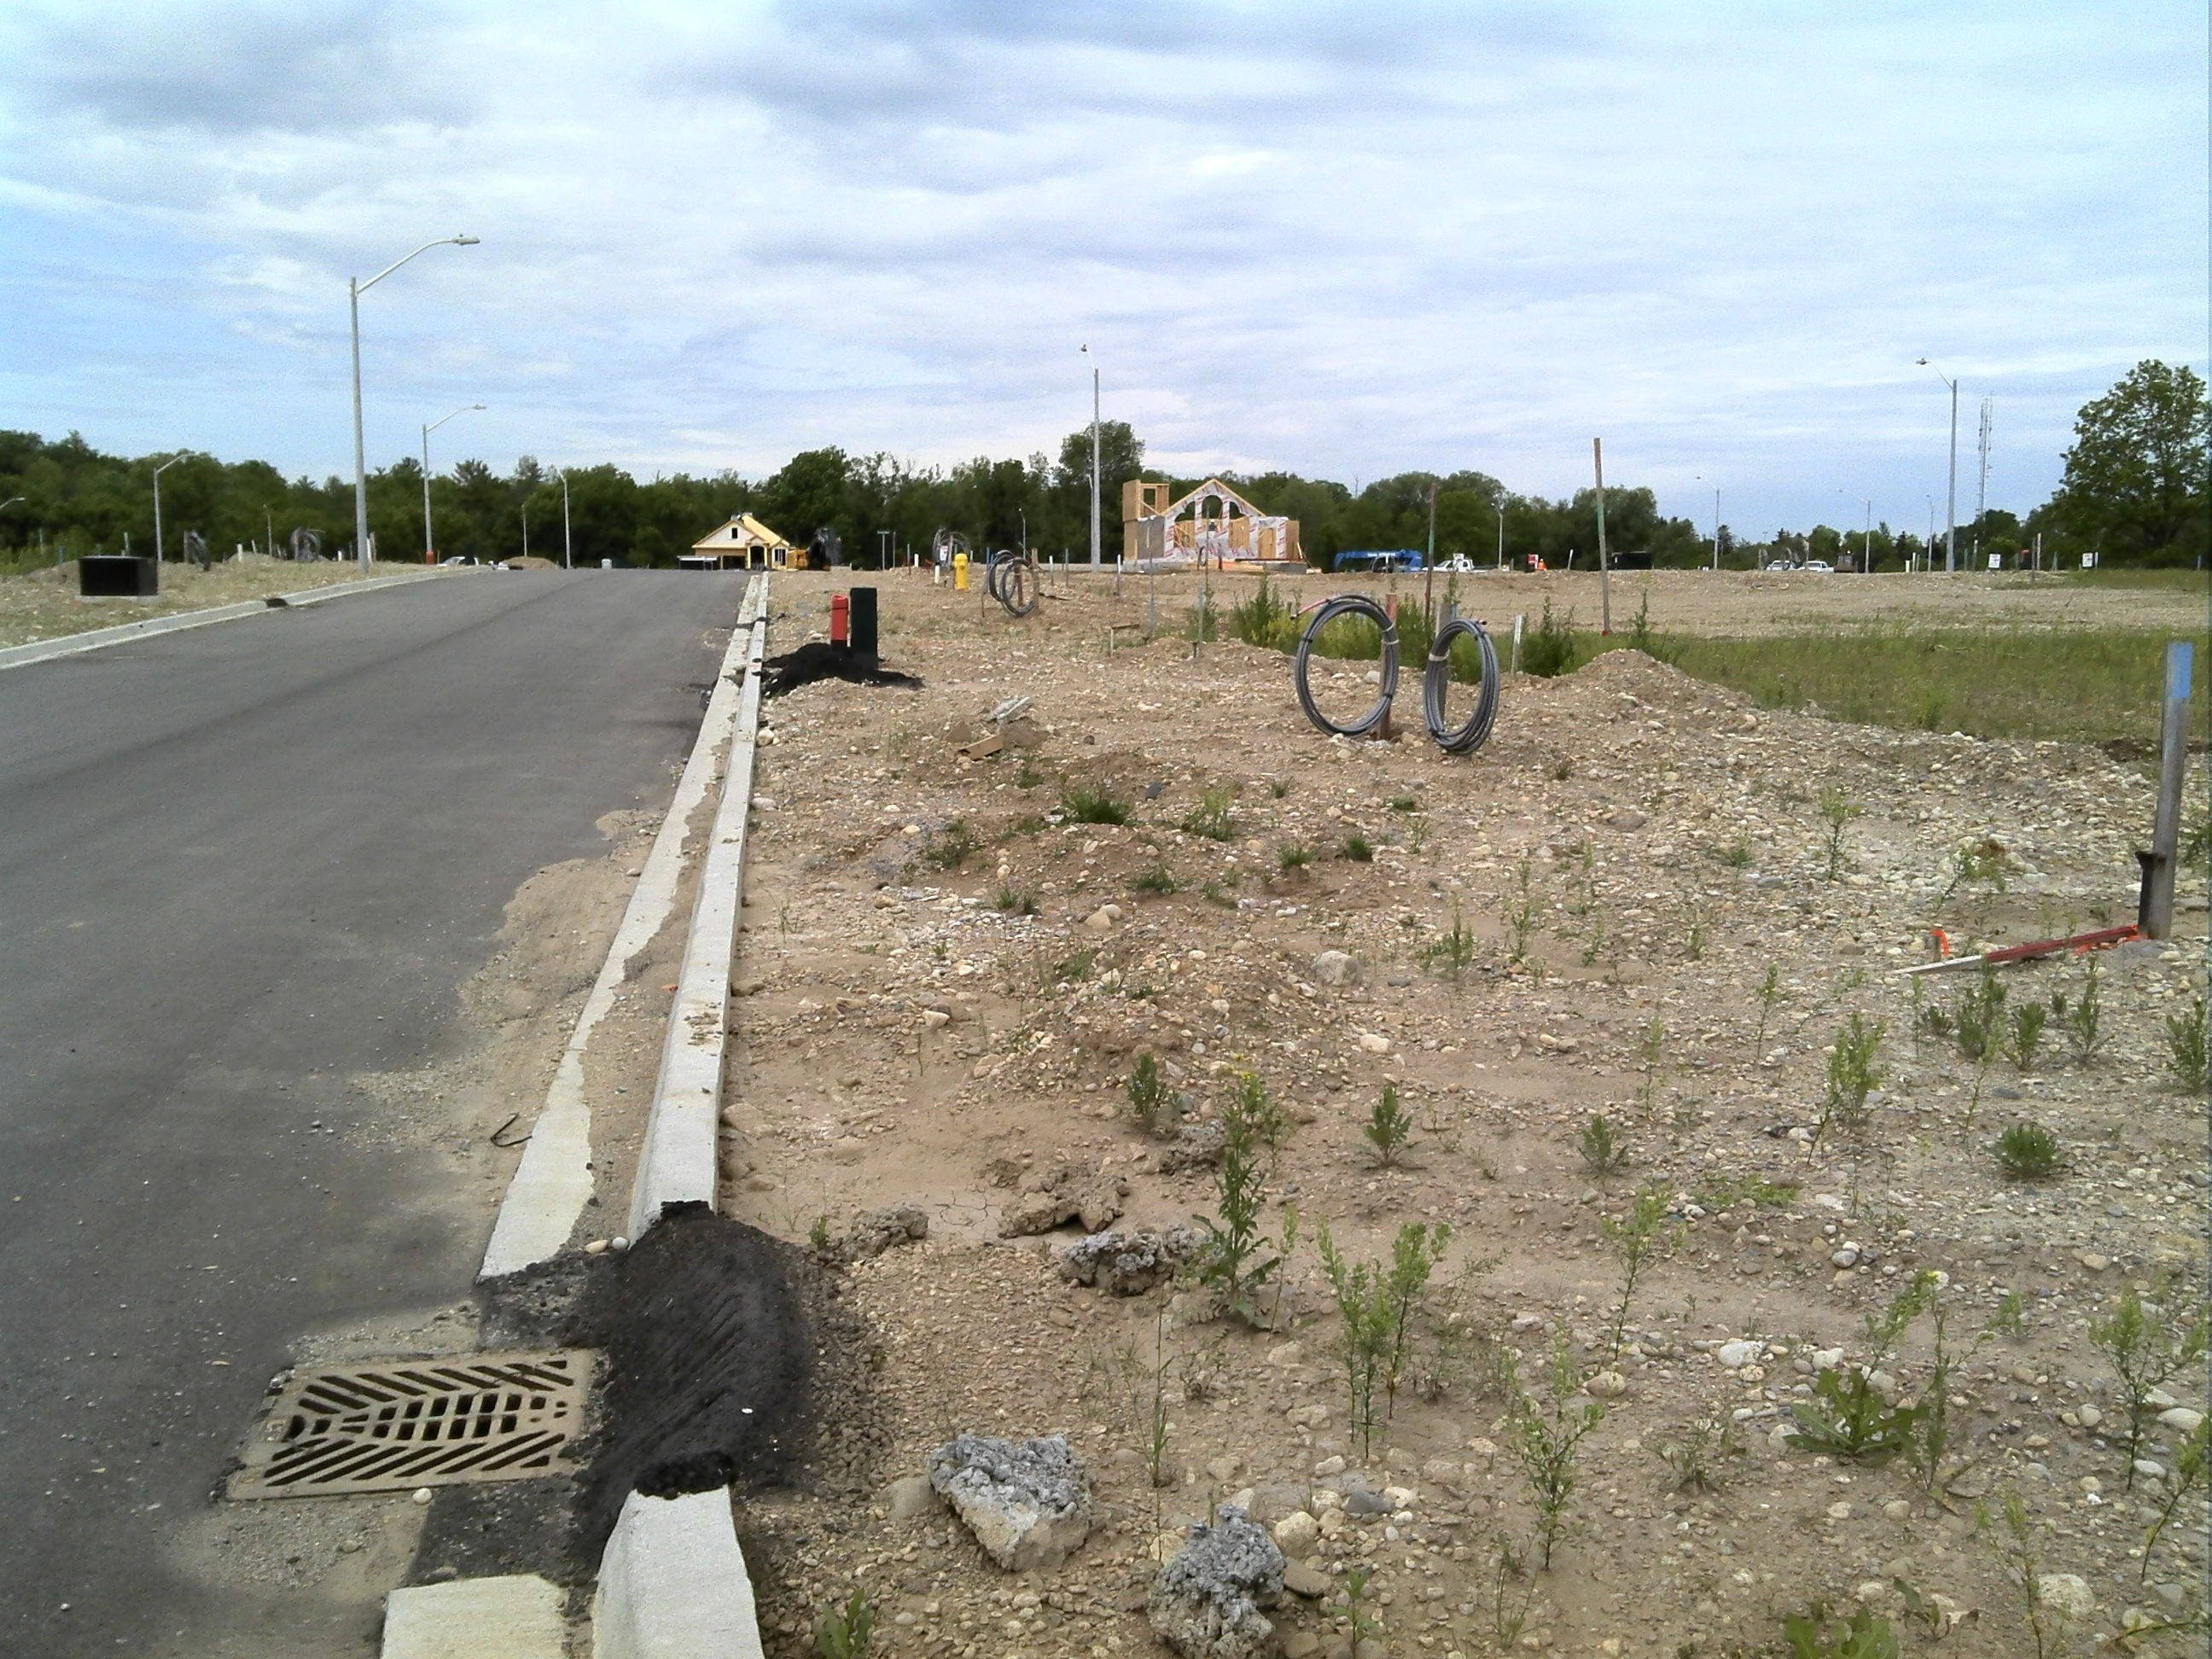 Urban soil assessment - boulevard areas in new subdivision.